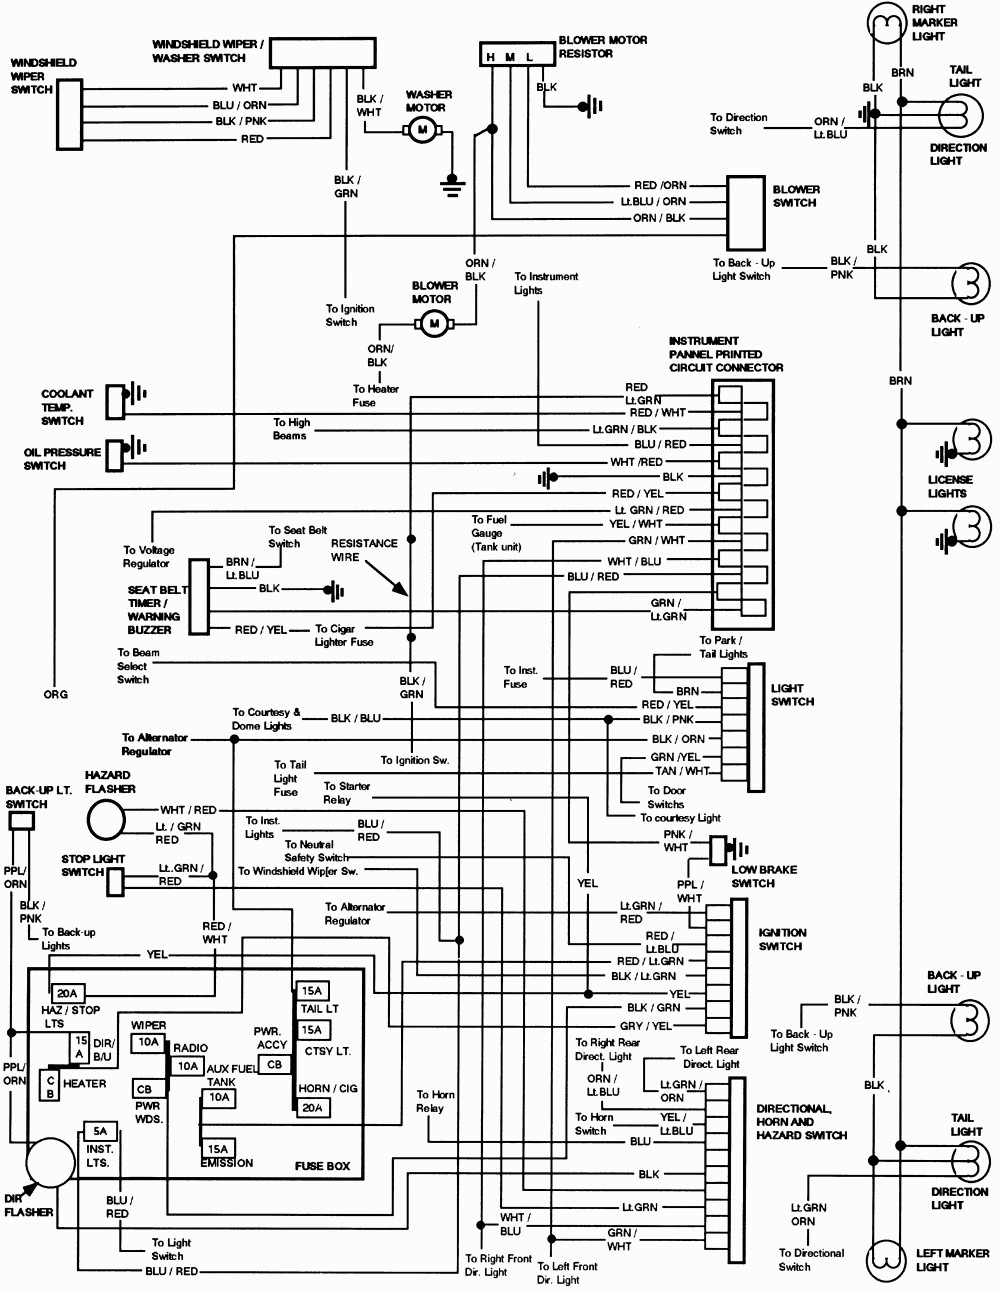 1989 ford f350 ignition wiring diagram get 95 ford f150 ignition wiring diagram download #3